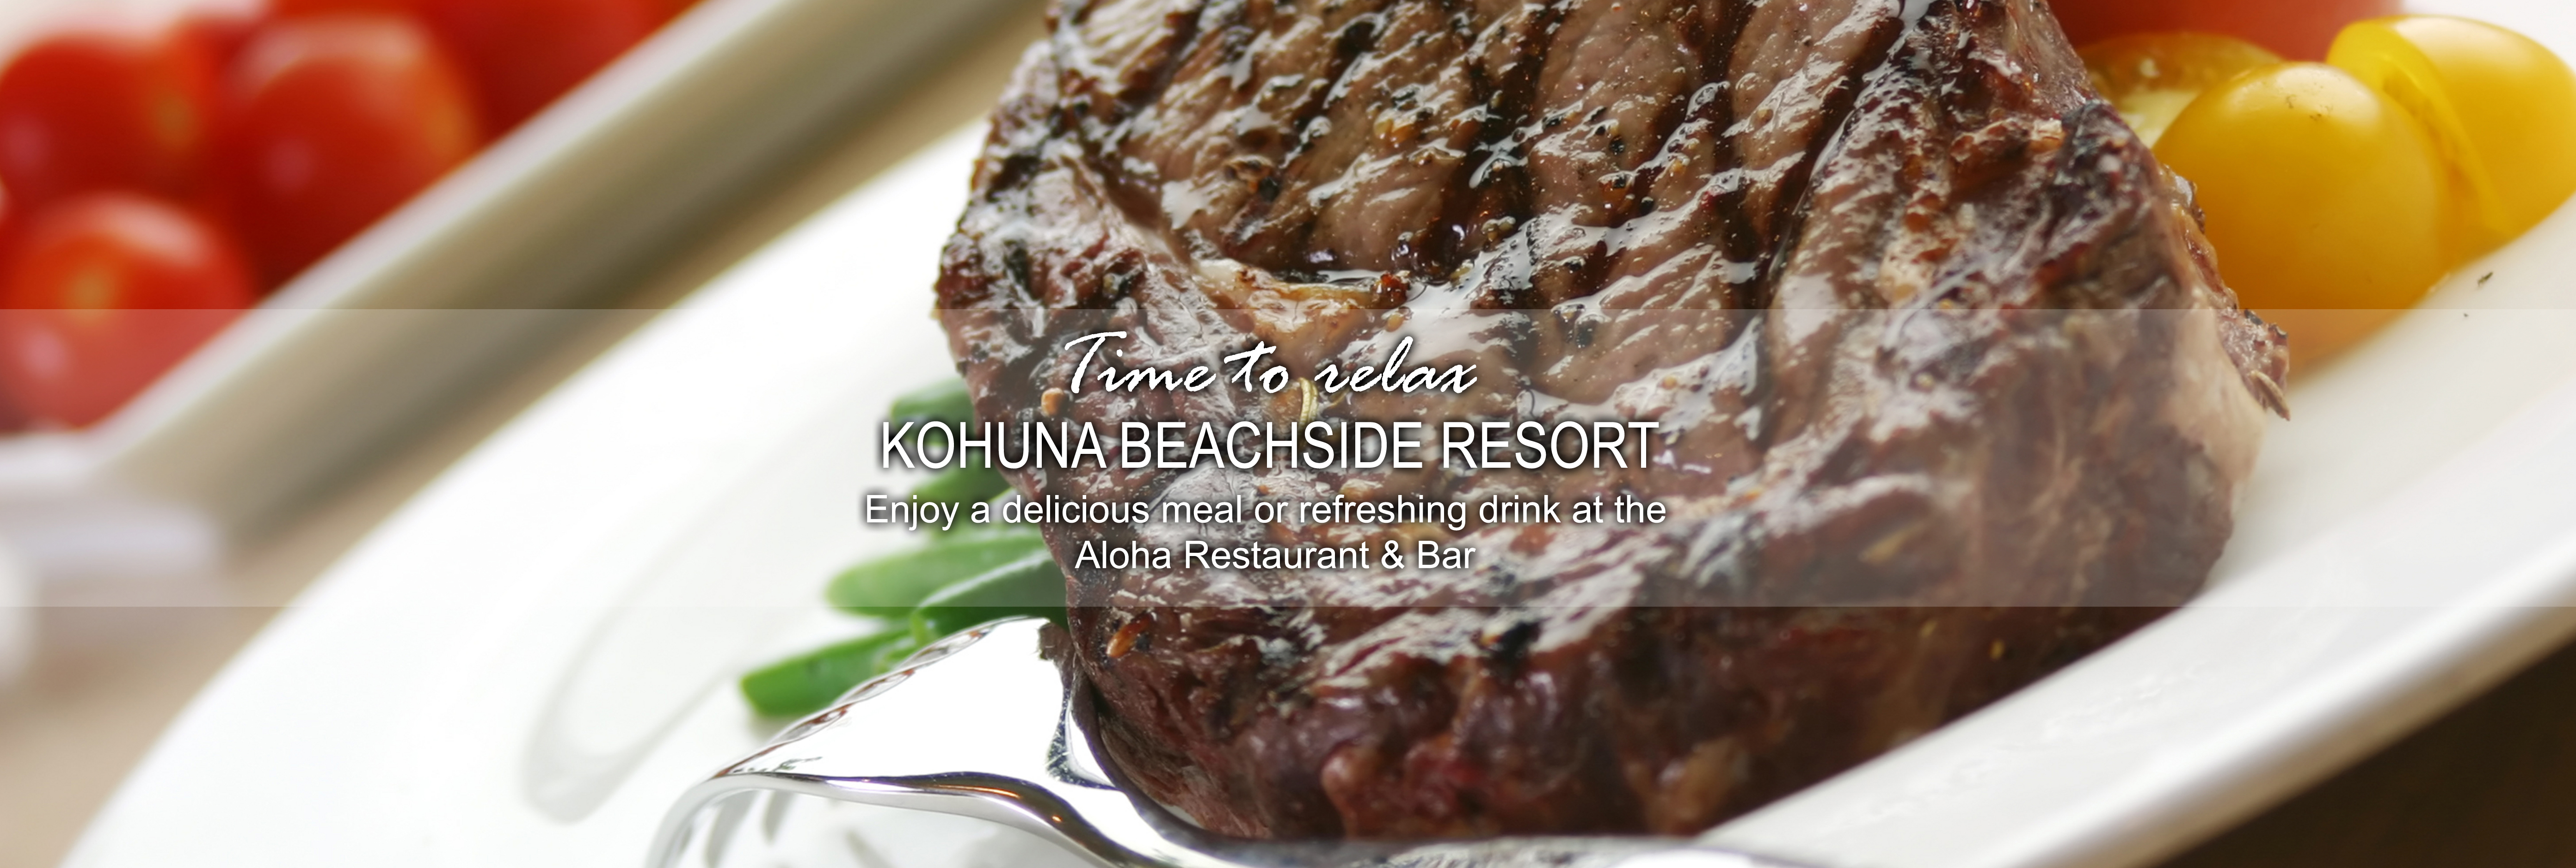 Kohuna beachside resort Food